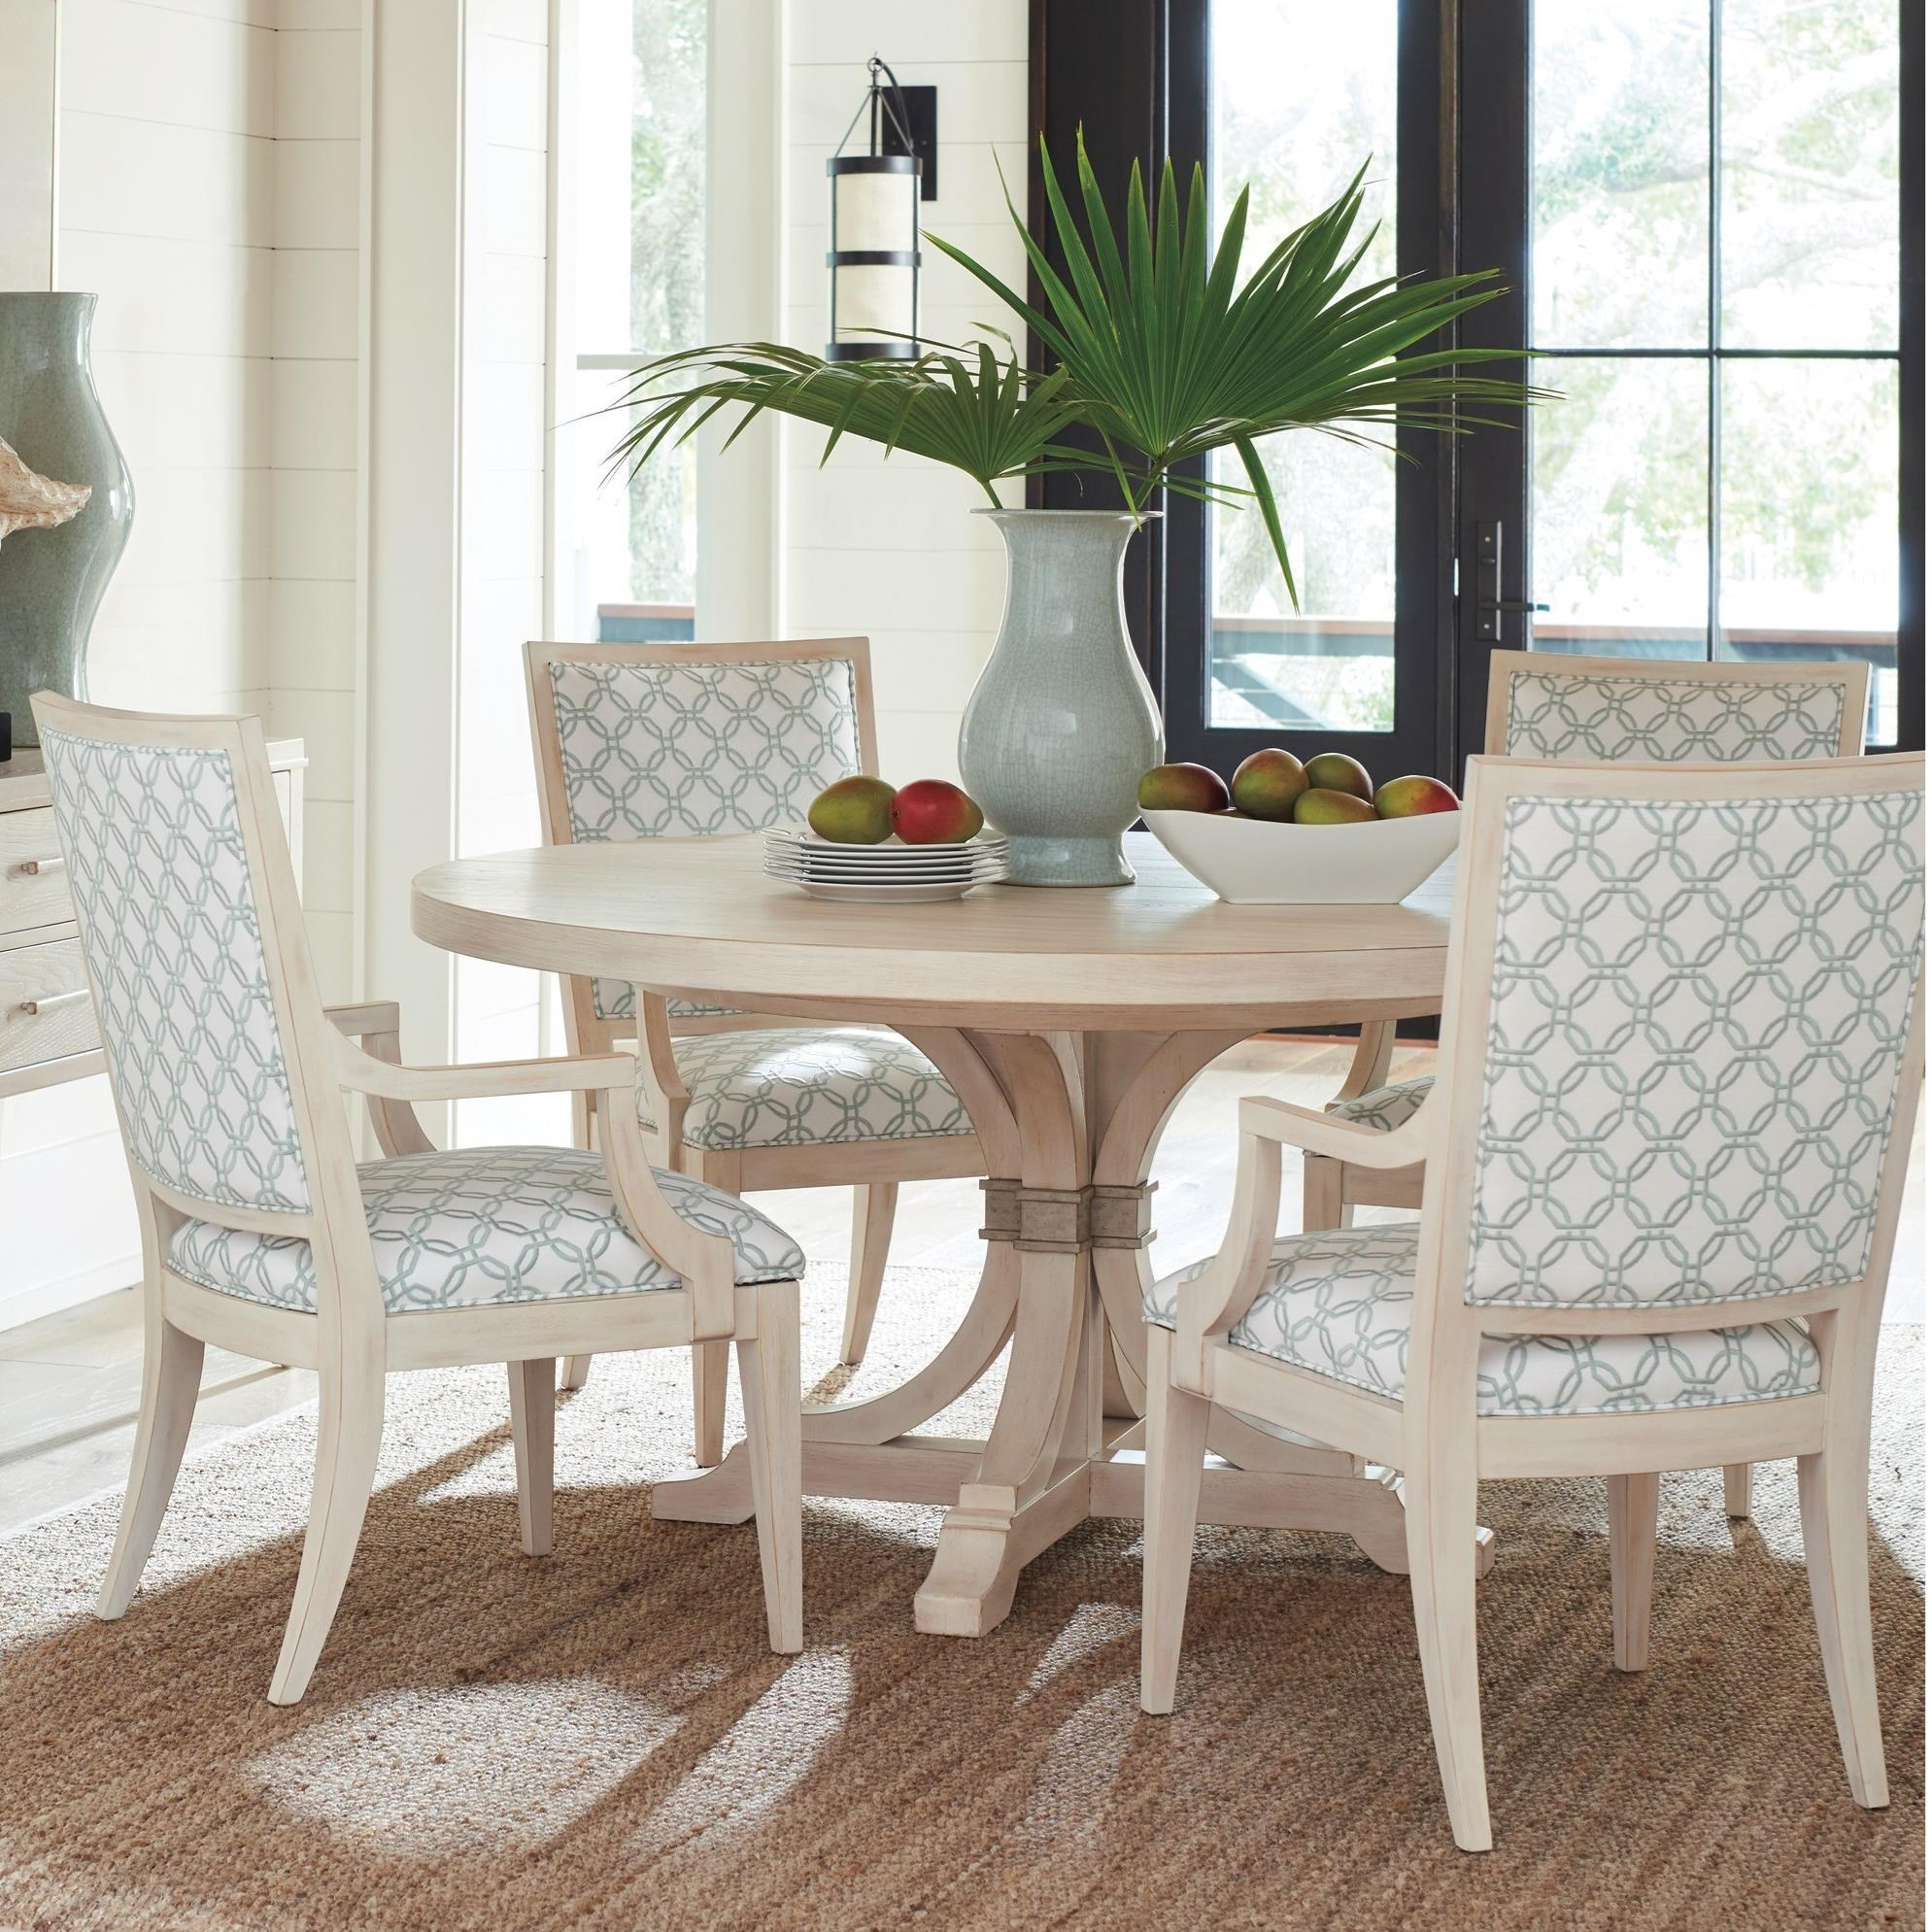 Newport 5 Pc Dining Set by Barclay Butera at Baer's Furniture